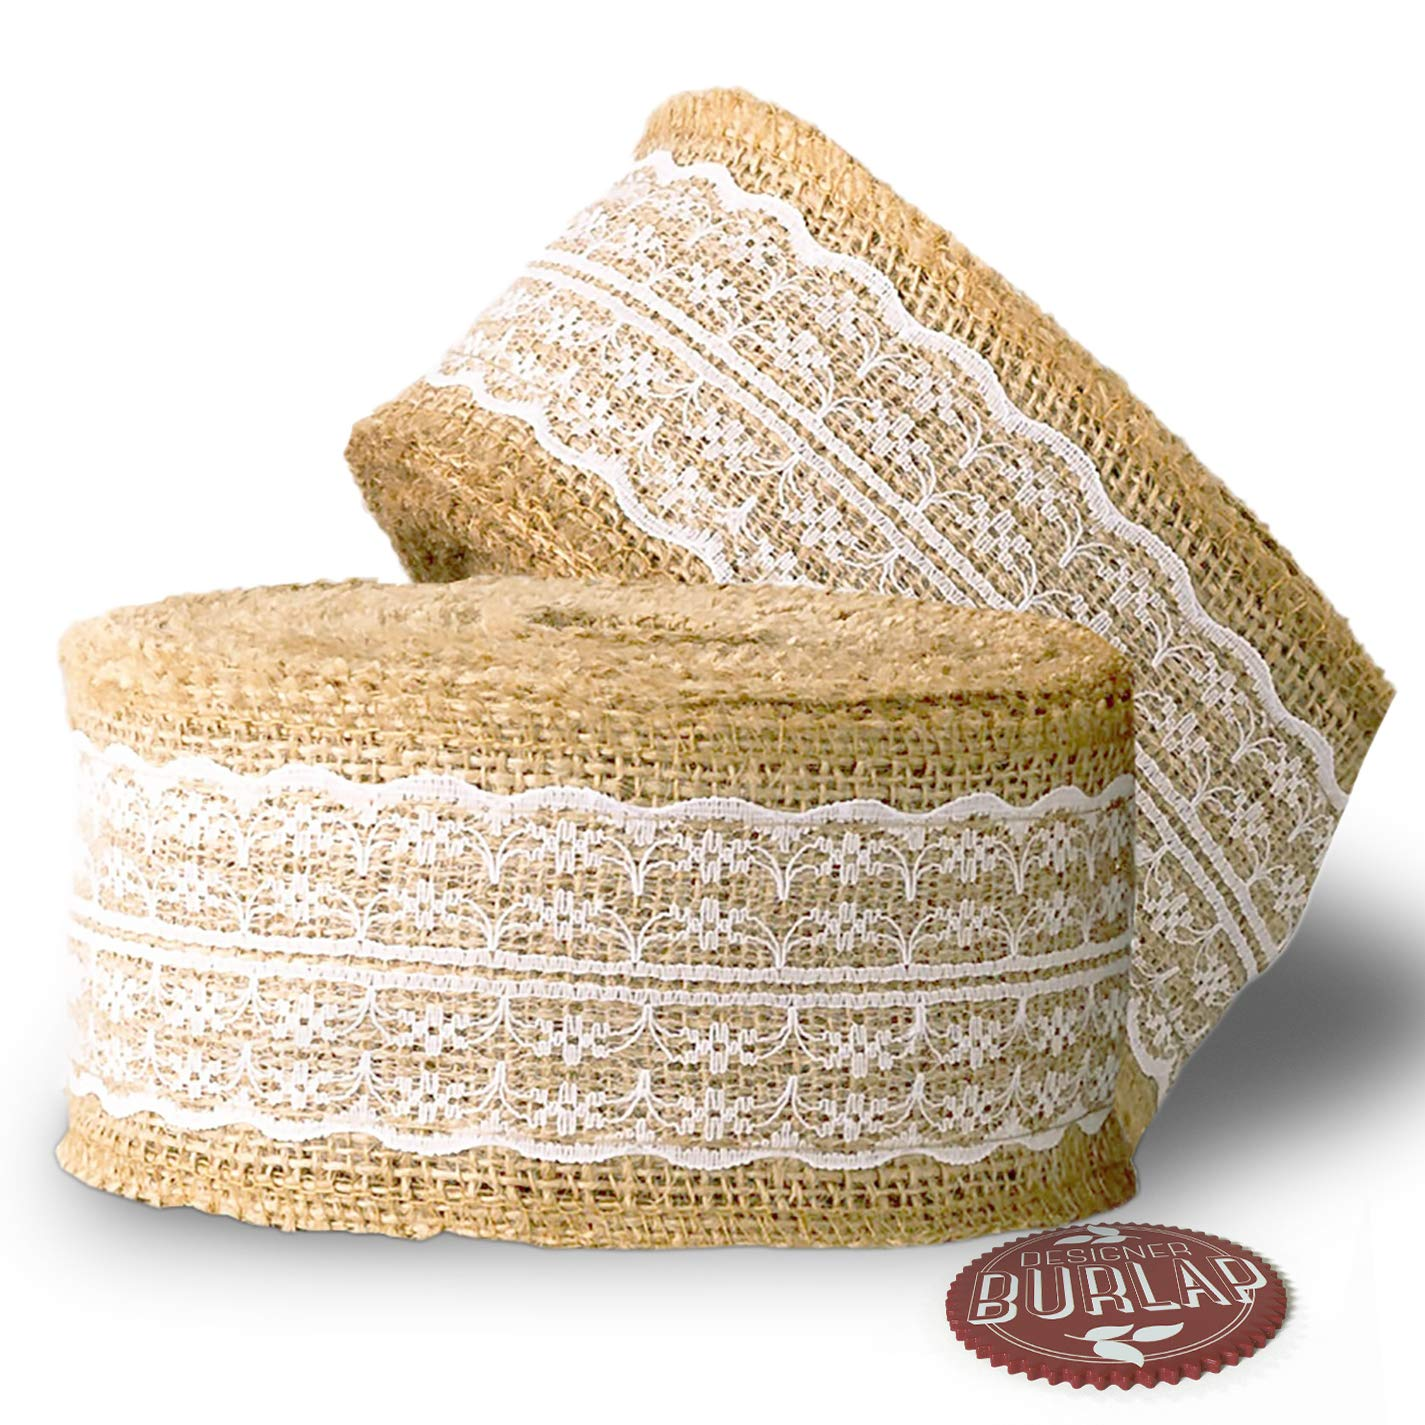 Burlap Ribbon with White Lace - 39 Feet Long - Burlap Lace Ribbons. DSW Quality Products 4336858375